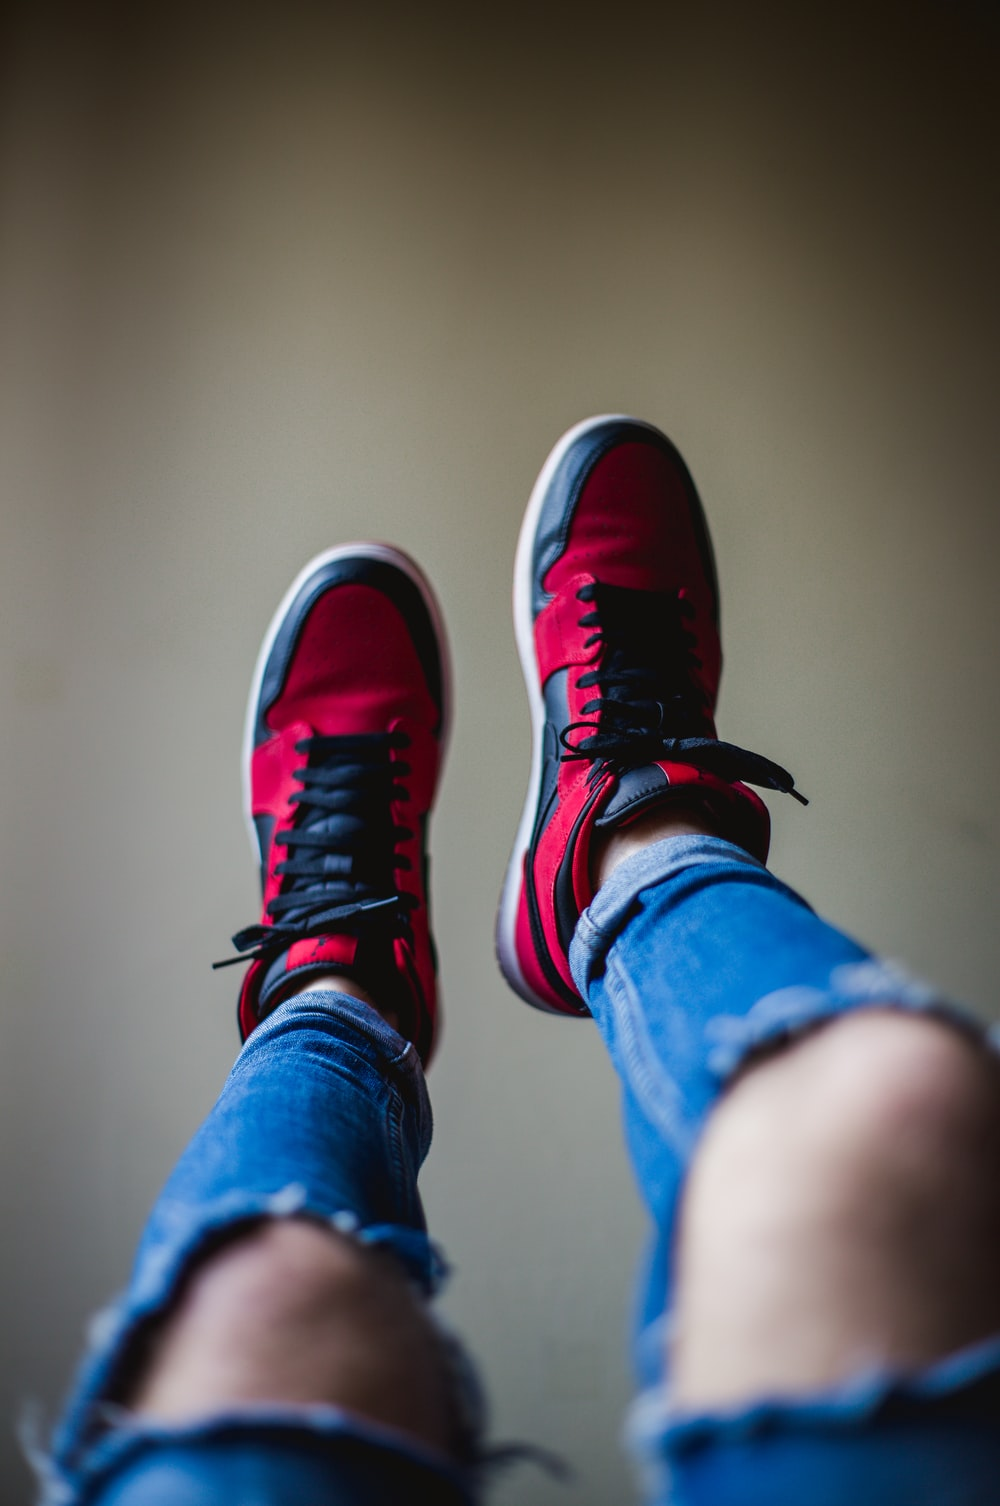 shallow focus photography of red-and-black shoes